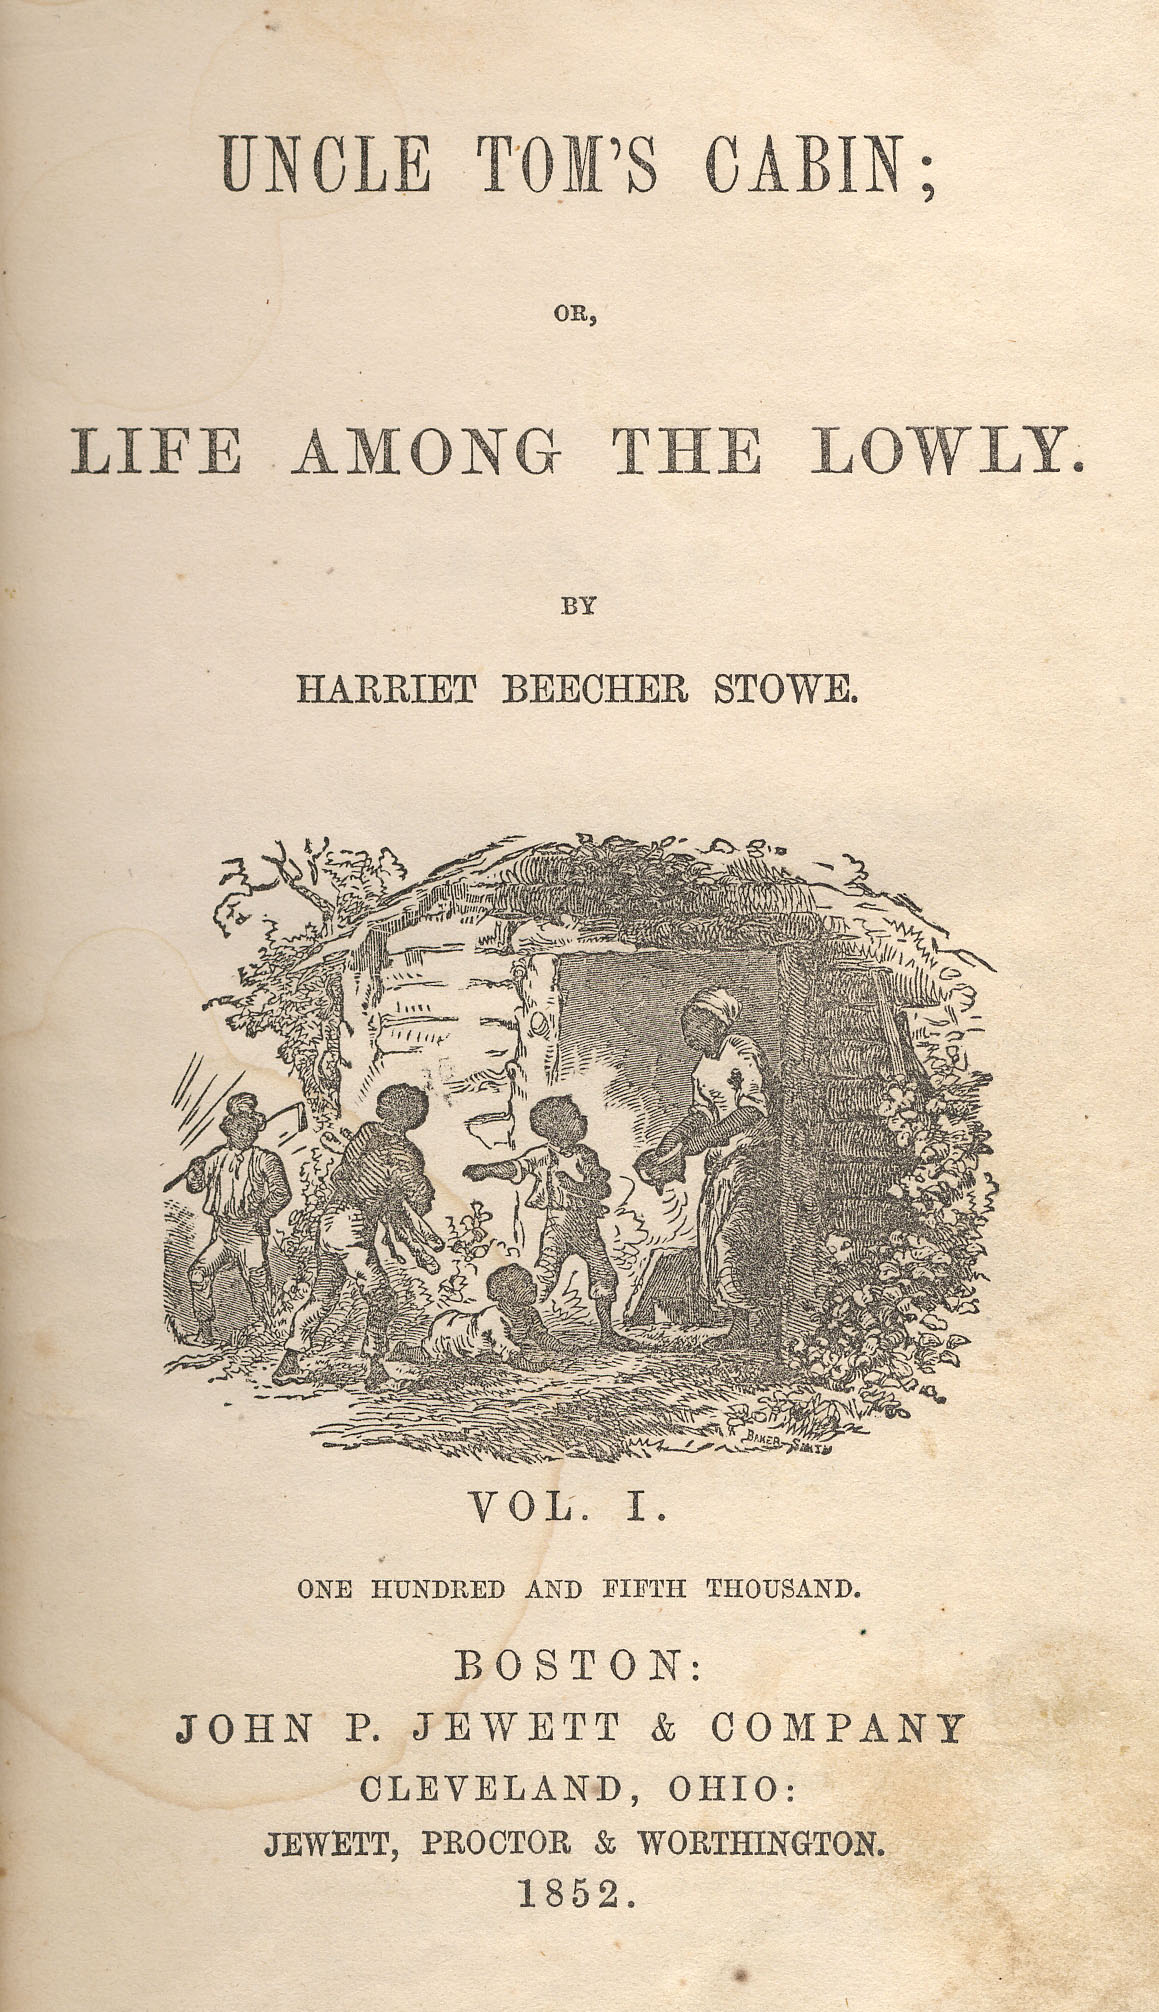 a reaction to harrier beecher stowes uncle toms cabin 27072013  harriet beecher stowe historical significance  uncle toms cabin was not only a wonderful book but it also brought to light many issues that blacks.